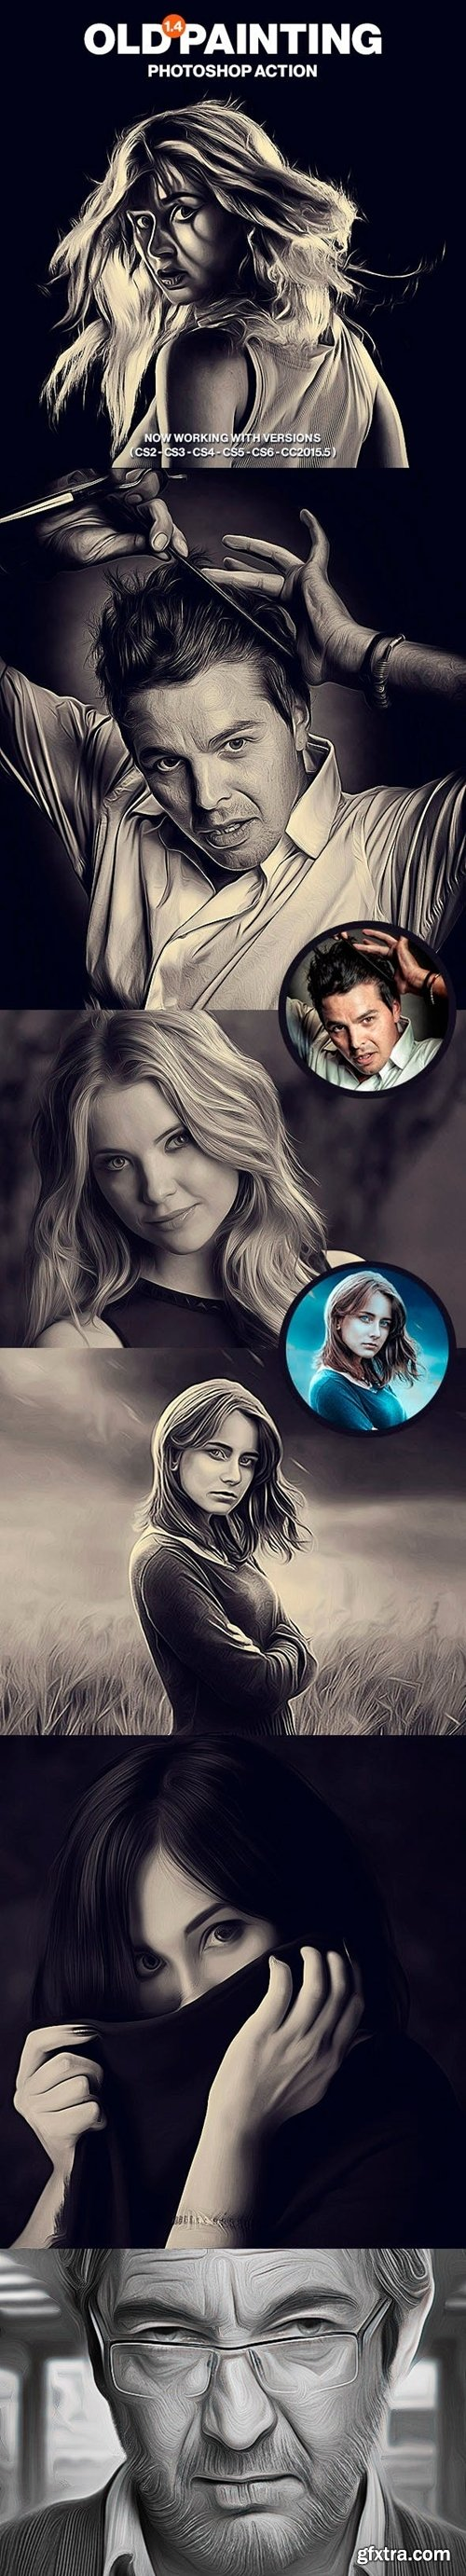 Graphicriver - Old Painting Photoshop Action v1.4 14682081